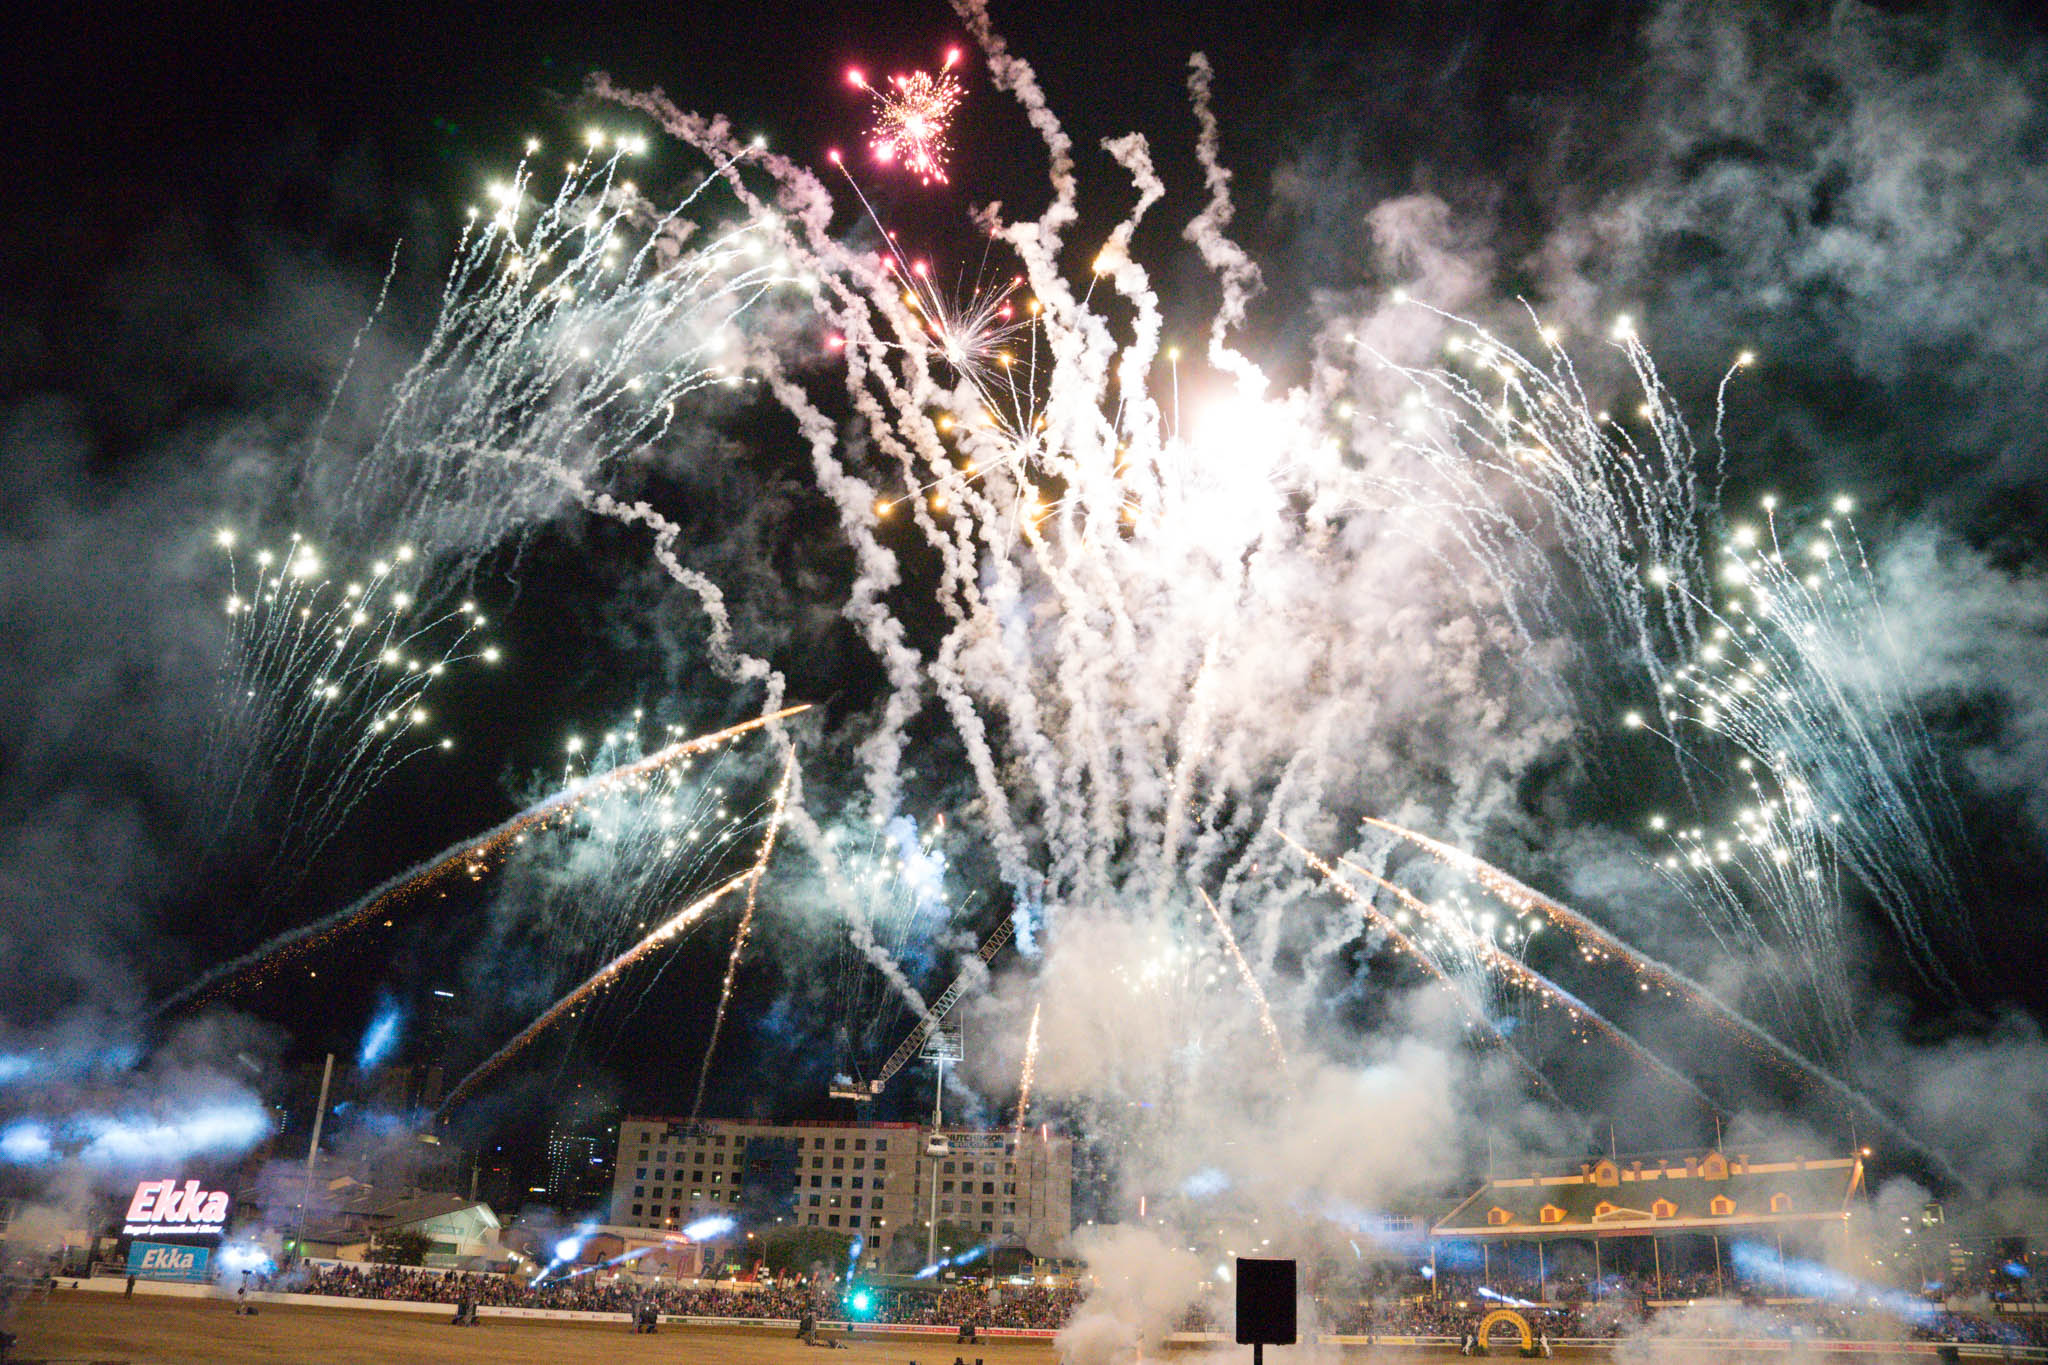 Fireworks at The Ekka